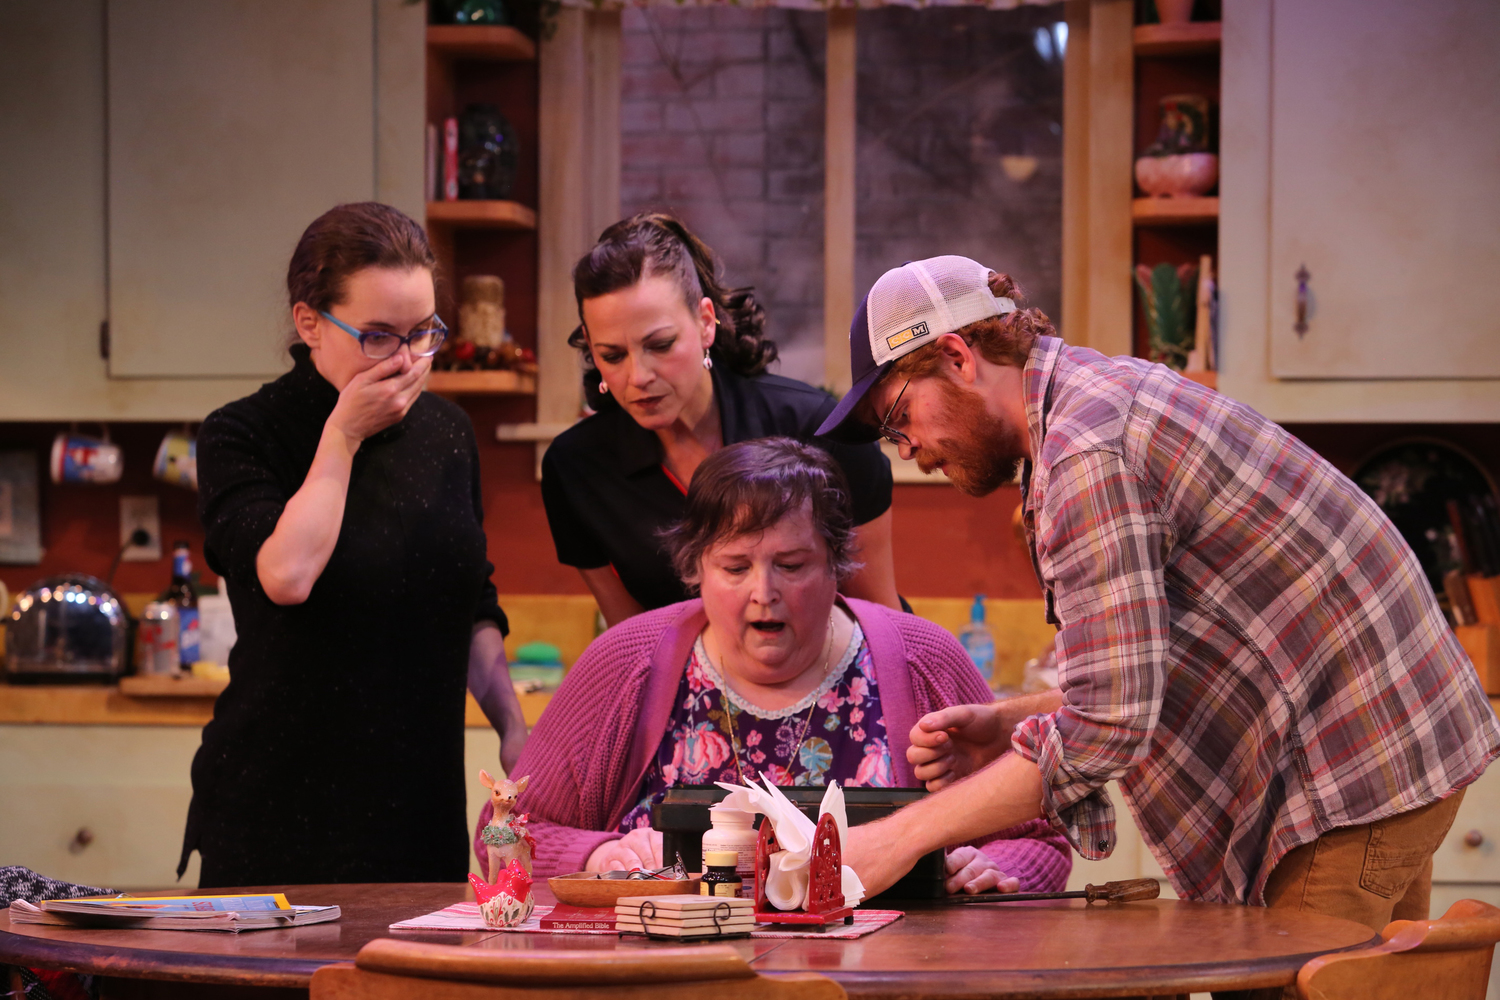 BWW Review: Virginia Repertory Theatre's MIRACLE ON SOUTH DIVISION STREET is the Surprise Hit of the Season!